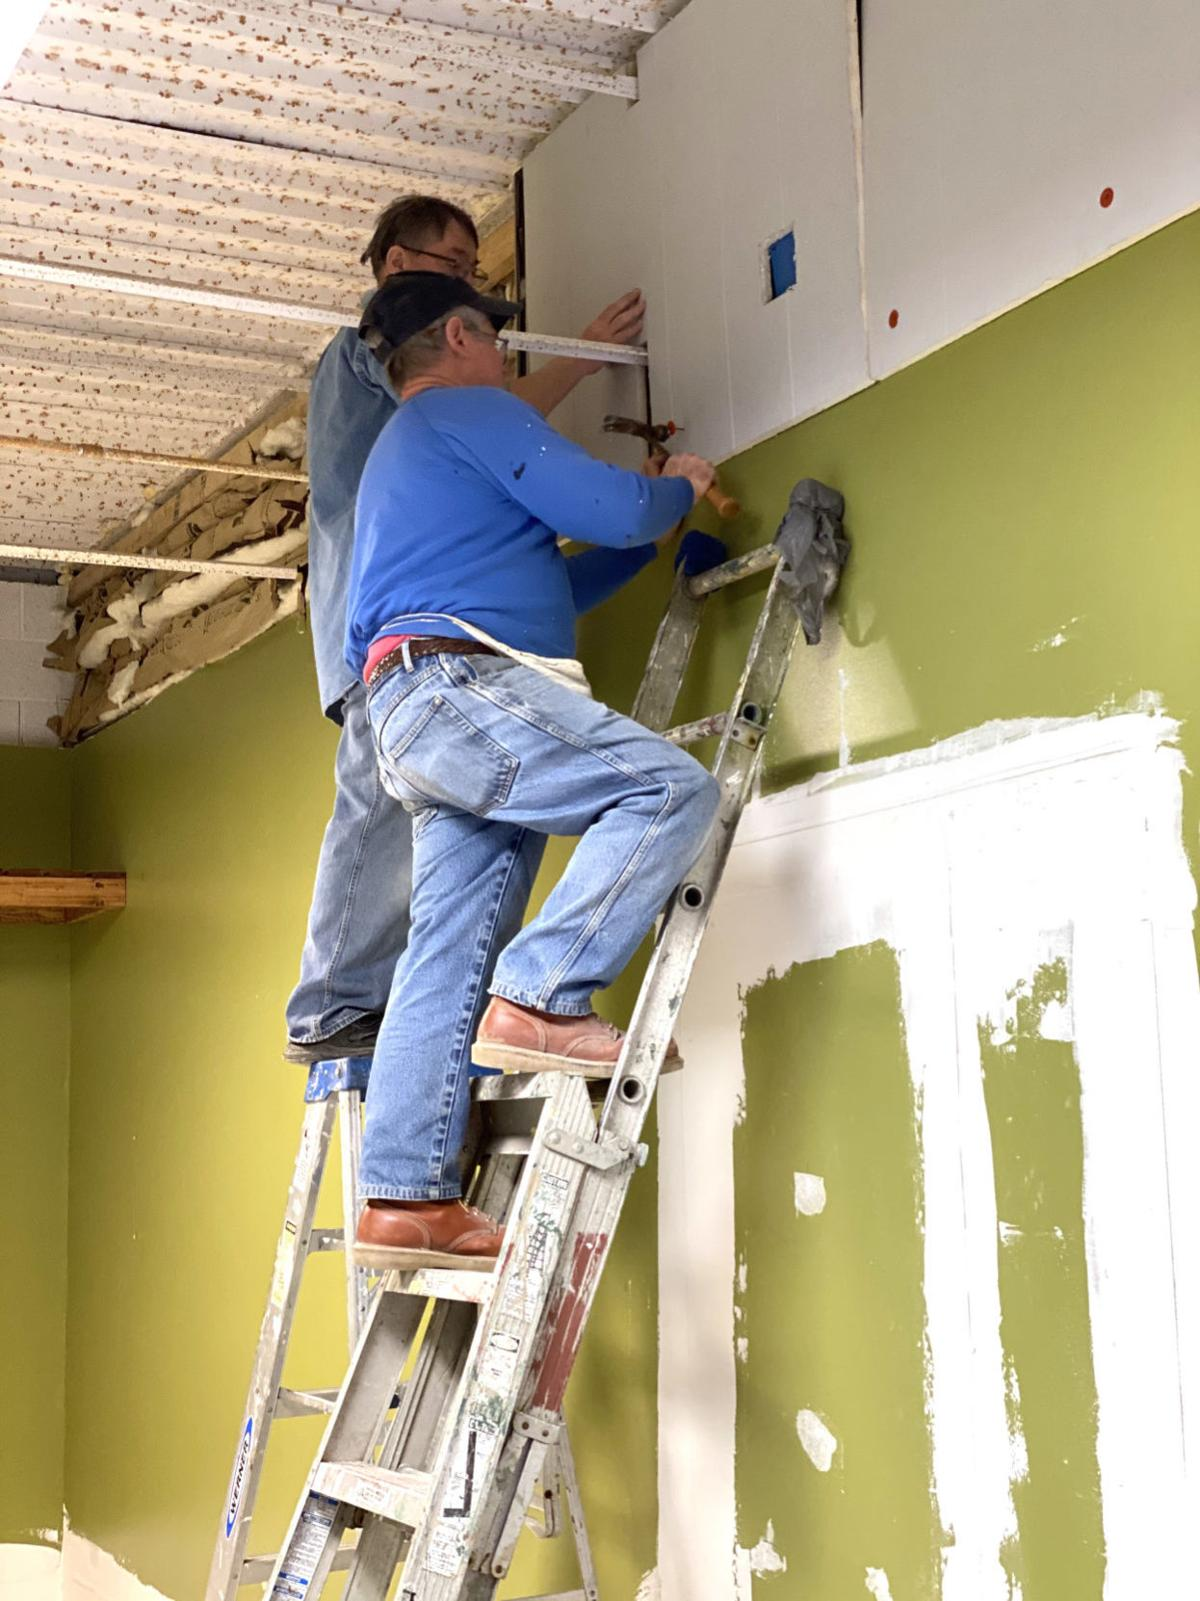 Slight remodel being done for new food pantry site